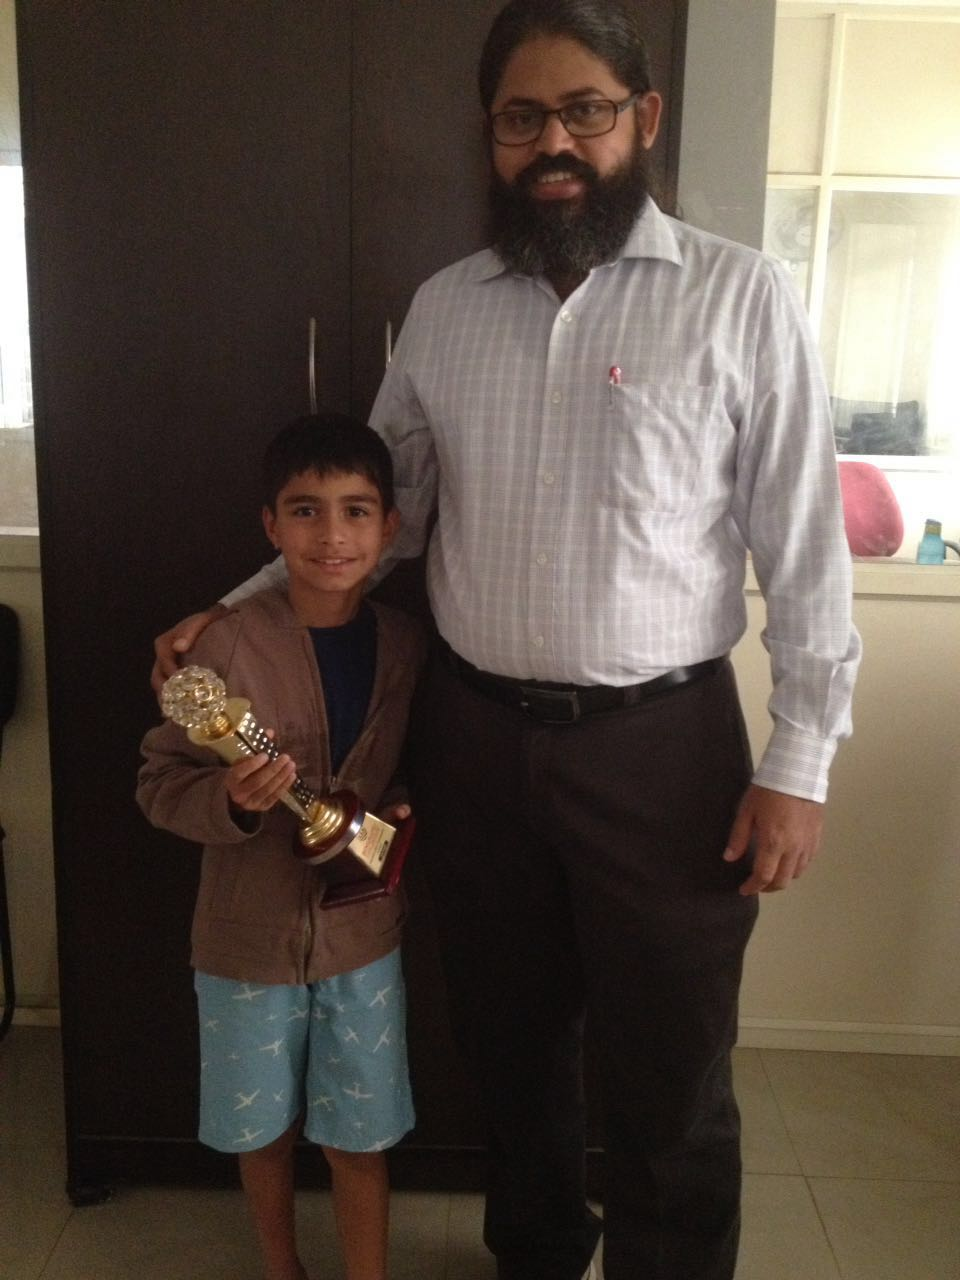 Nirukth places 3rd in the Bengaluru Chess Center Children's Chess Tournament (U-9 Boys) - 2016